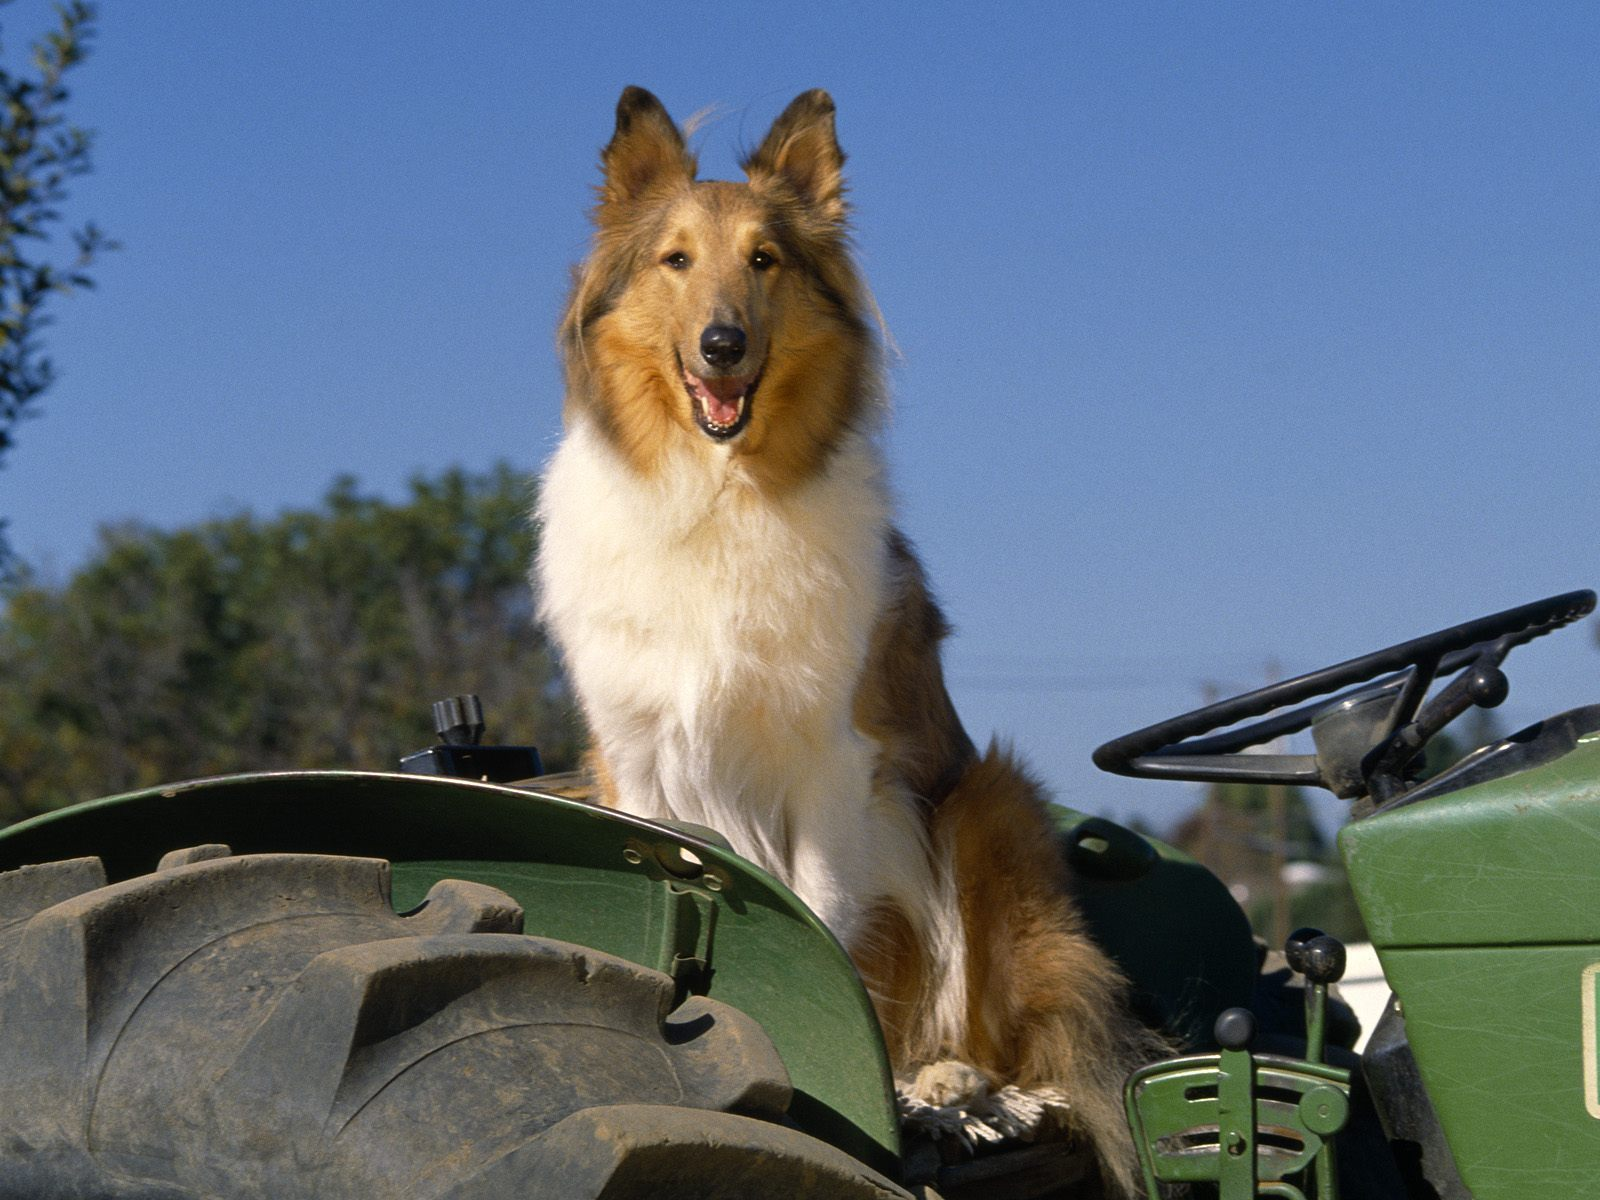 Collie Rough dog on the tractor wallpaper